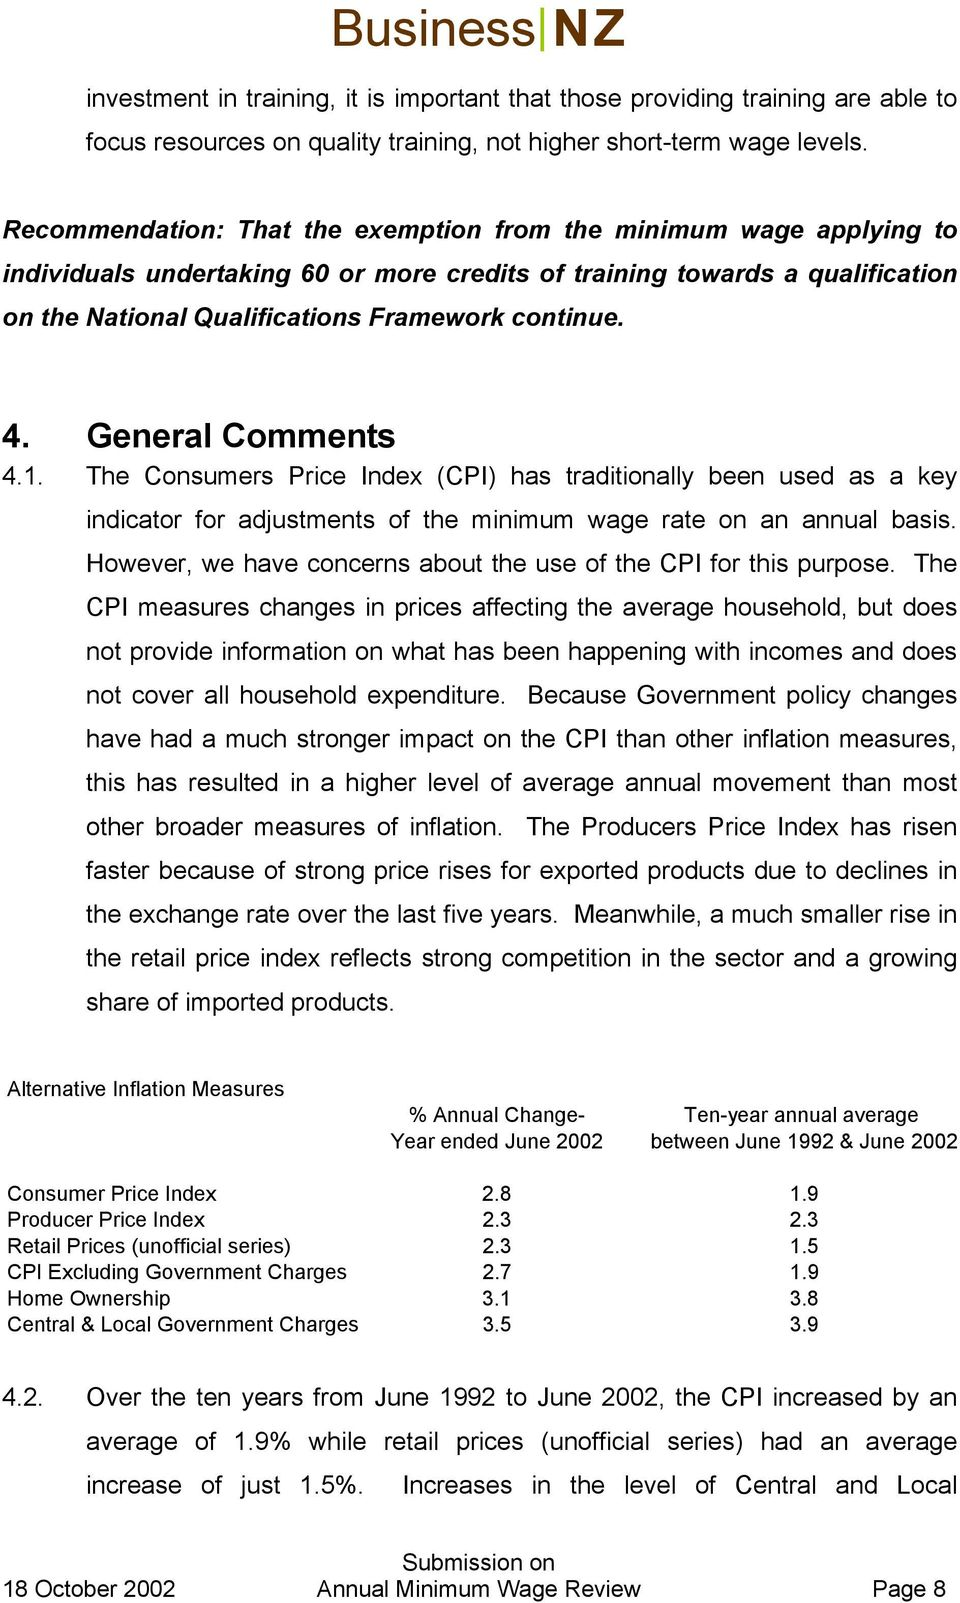 4. General Comments 4.1. The Consumers Price Index (CPI) has traditionally been used as a key indicator for adjustments of the minimum wage rate on an annual basis.